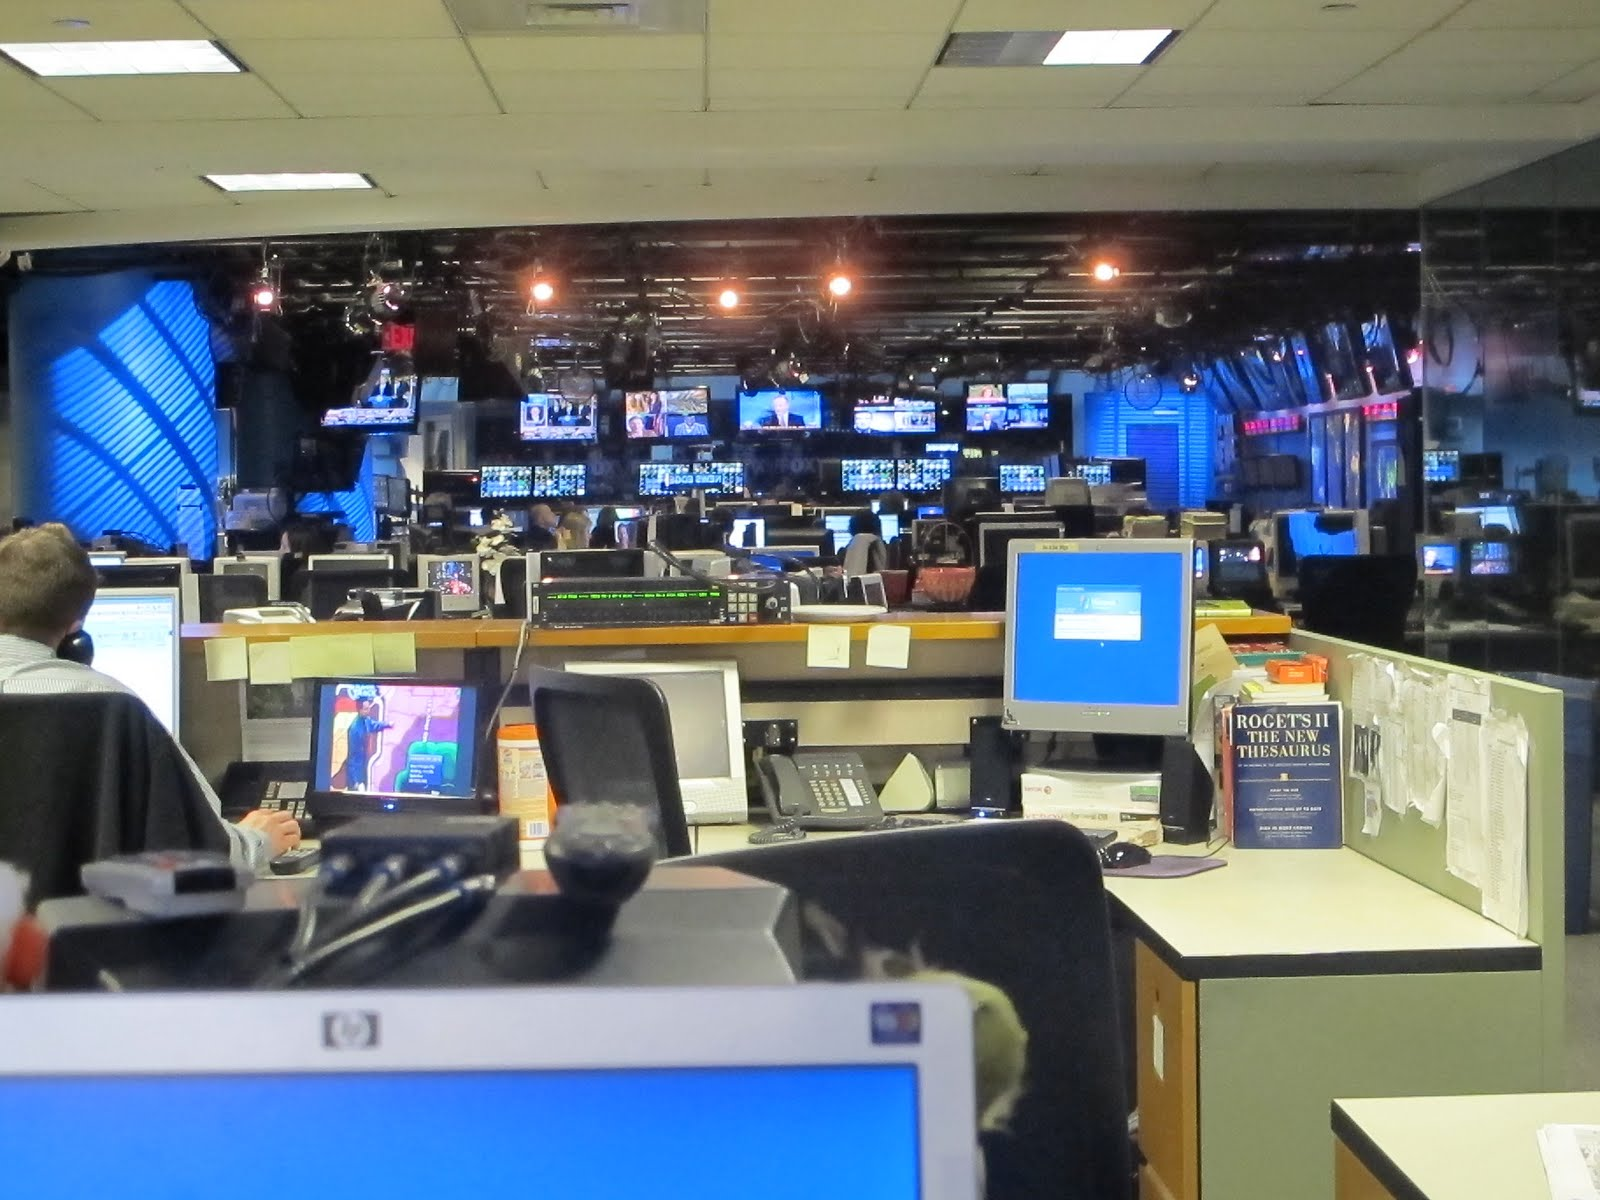 Fox News Studio NY